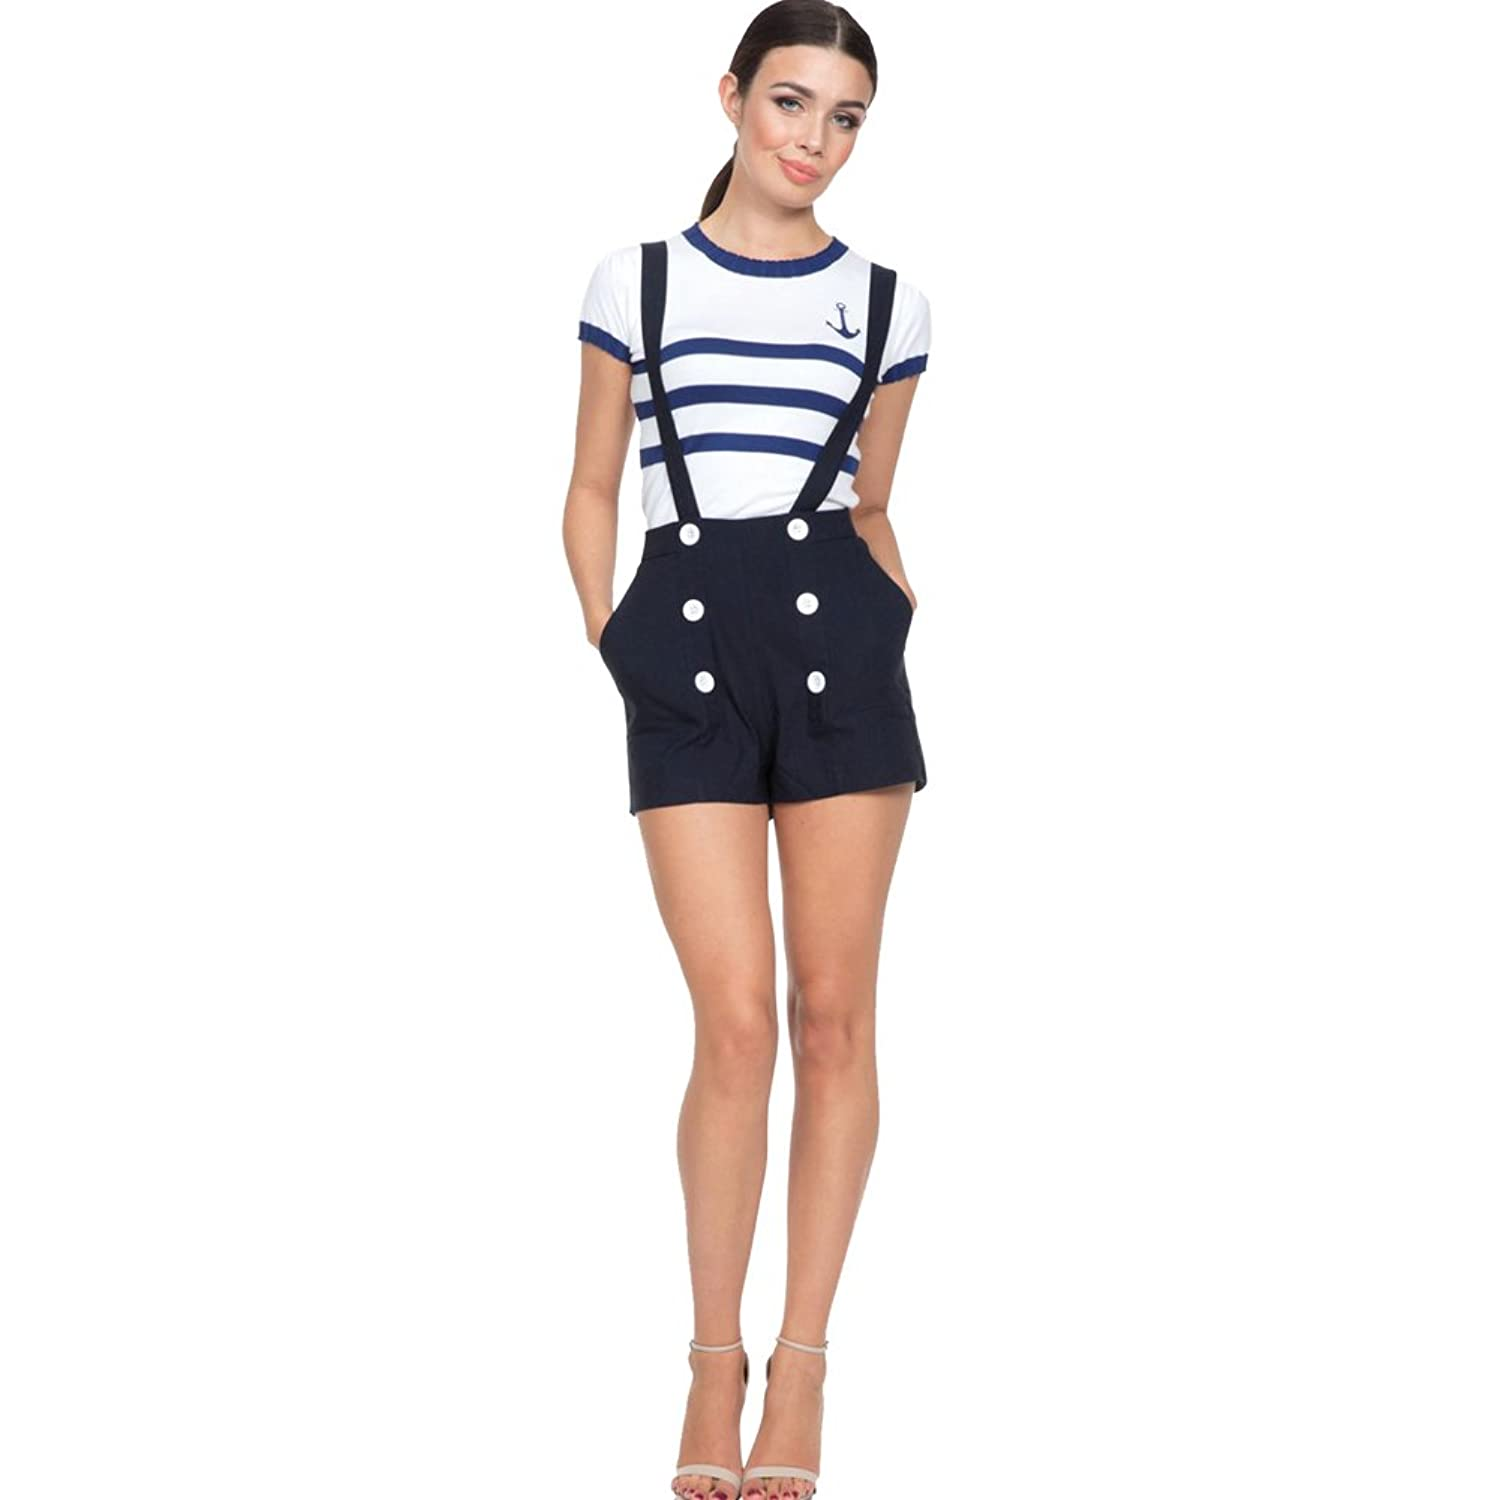 High Waisted Shorts- 1950s Vintage, Pinup, Rockabilly Womens Voodoo Vixen DAISY Nautical Shorts Navy $48.95 AT vintagedancer.com